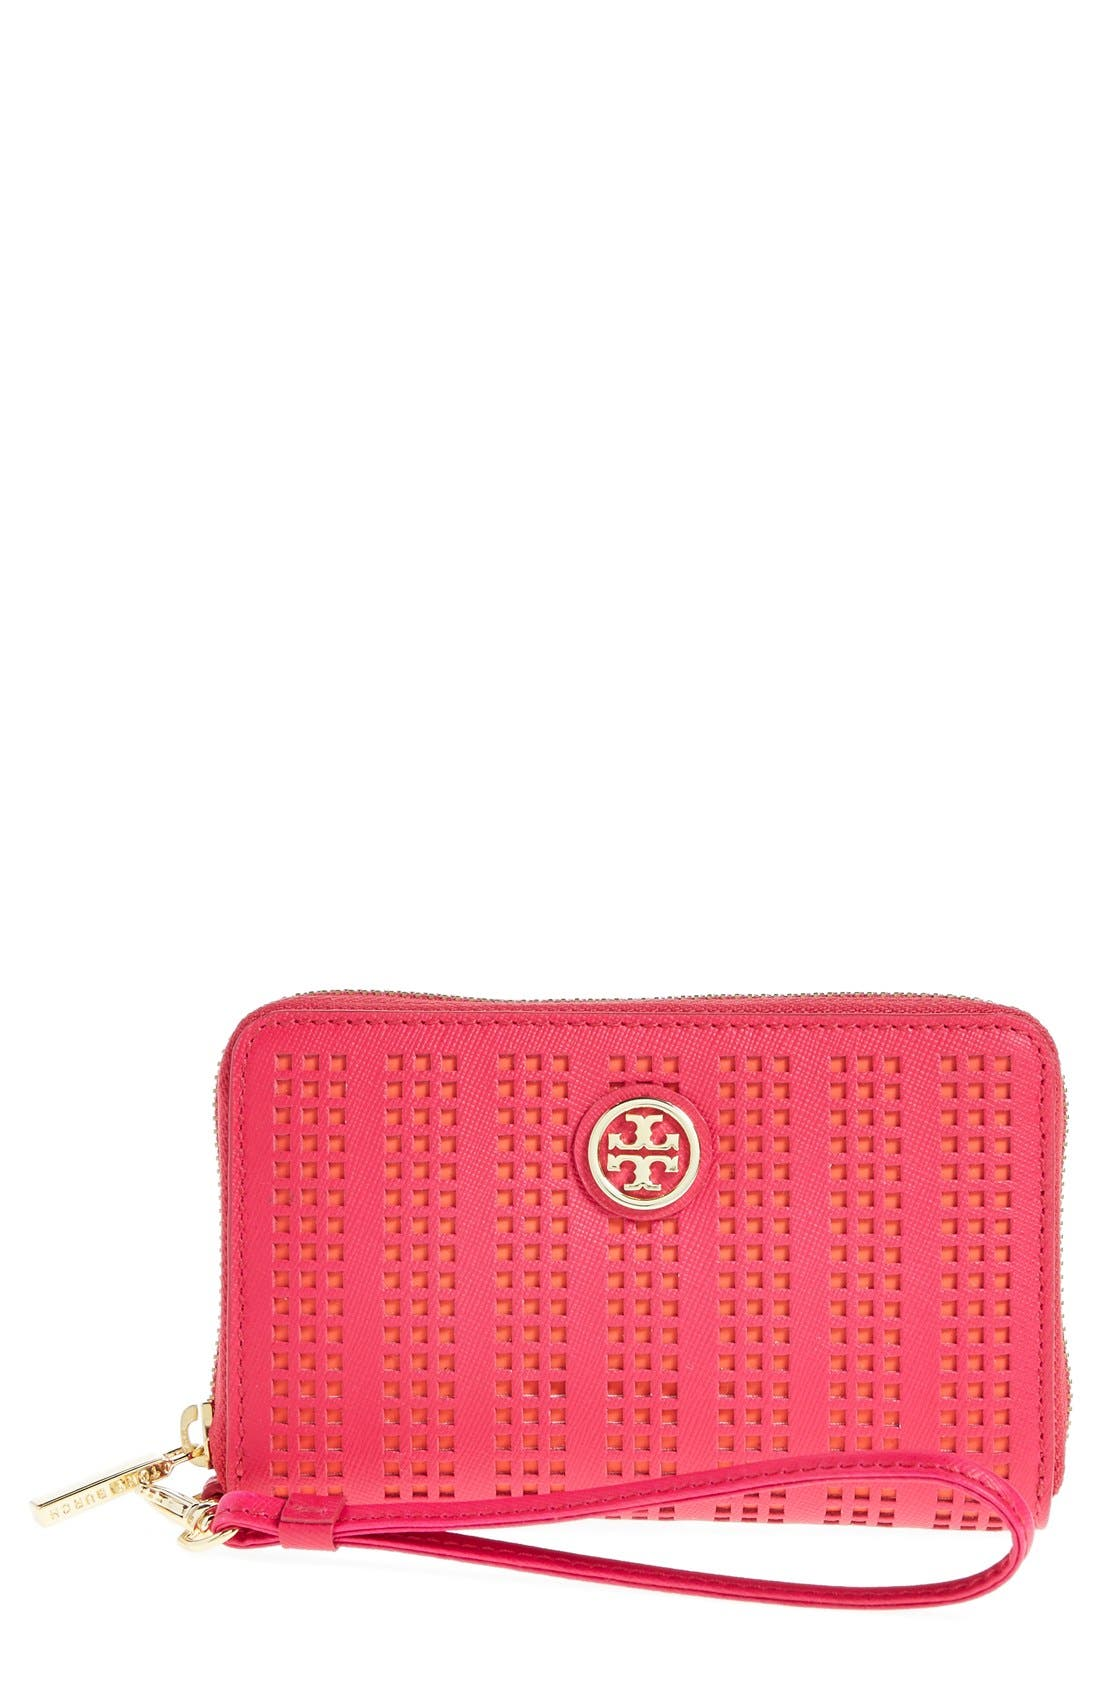 Main Image - Tory Burch 'Robinson' Perforated Smartphone Wristlet